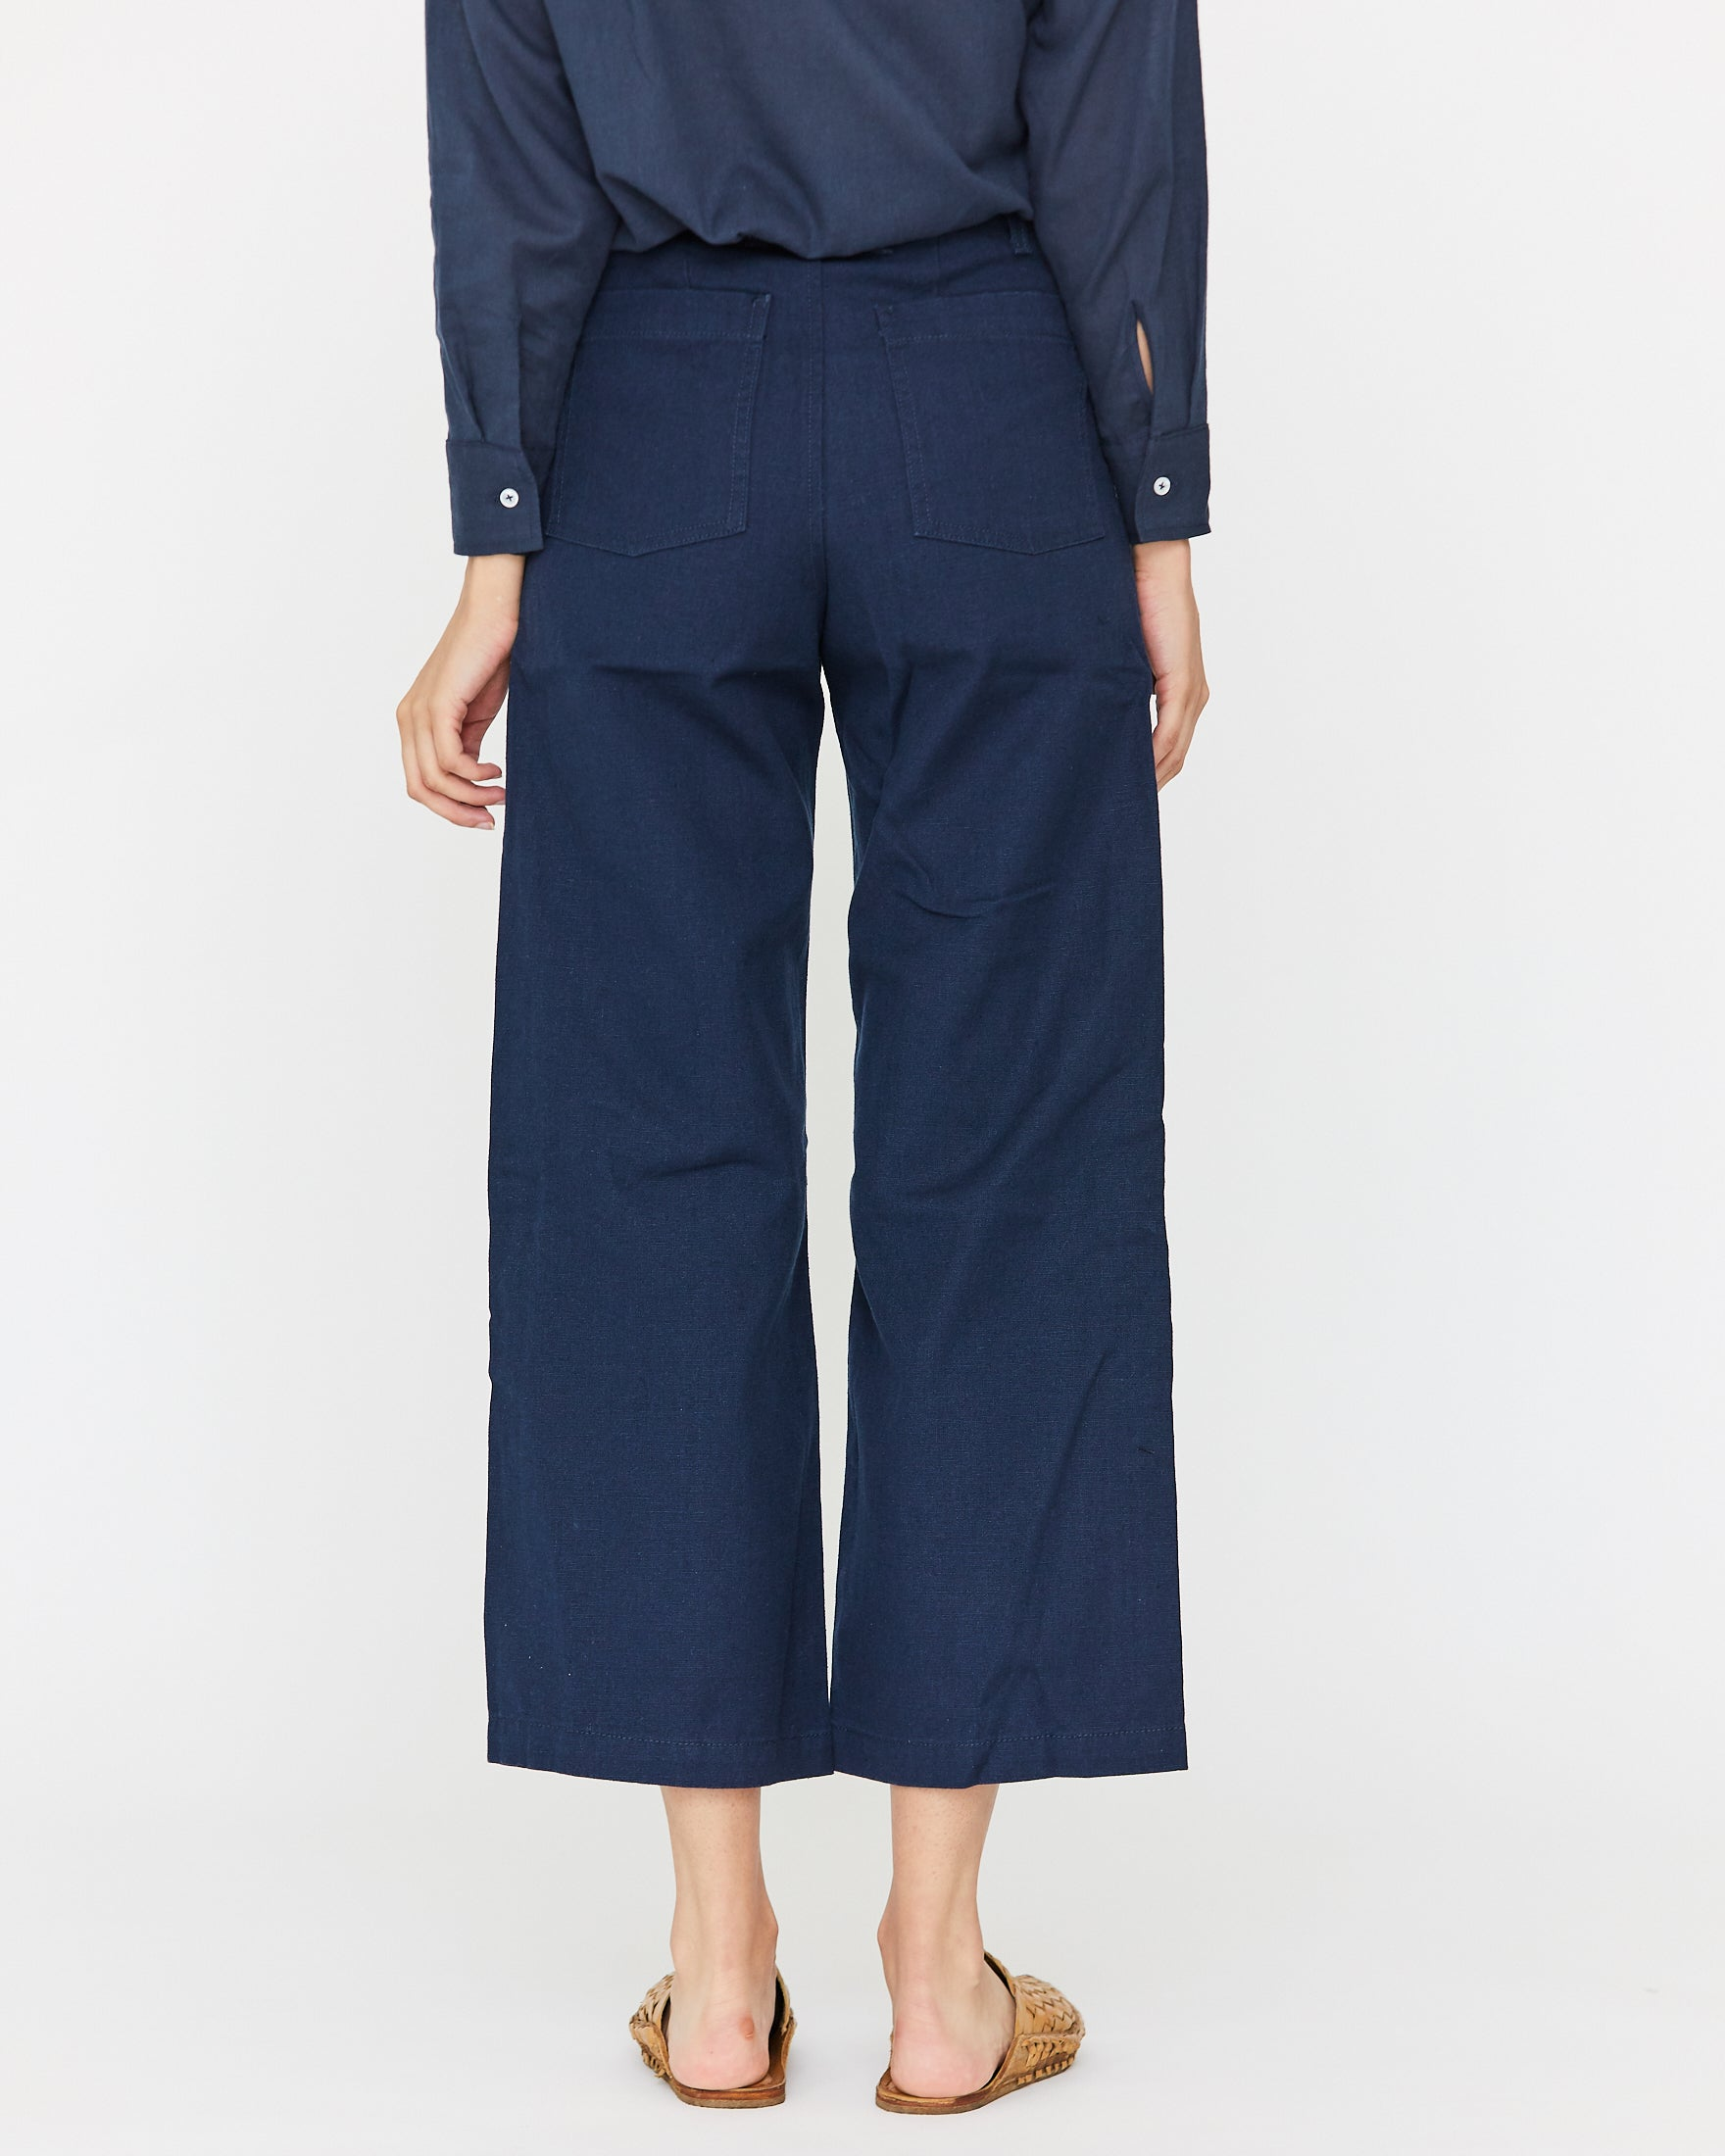 FINCH CANVAS PANT -  MIDNIGHT